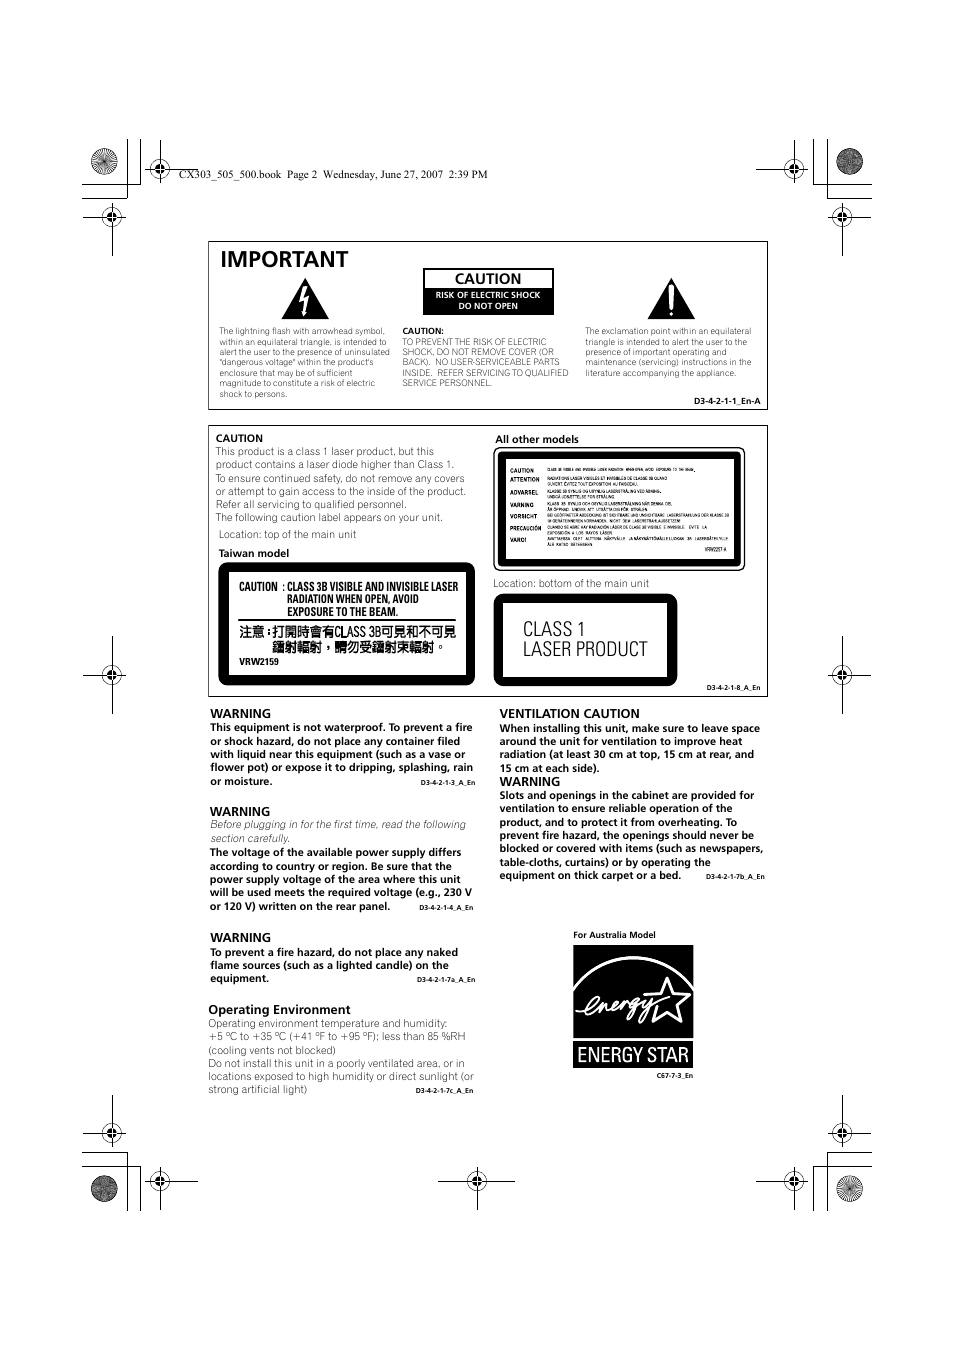 Toyota Sienna Service Manual: Mute Signal Circuit between Radio Receiver and Television DisplayAssembly